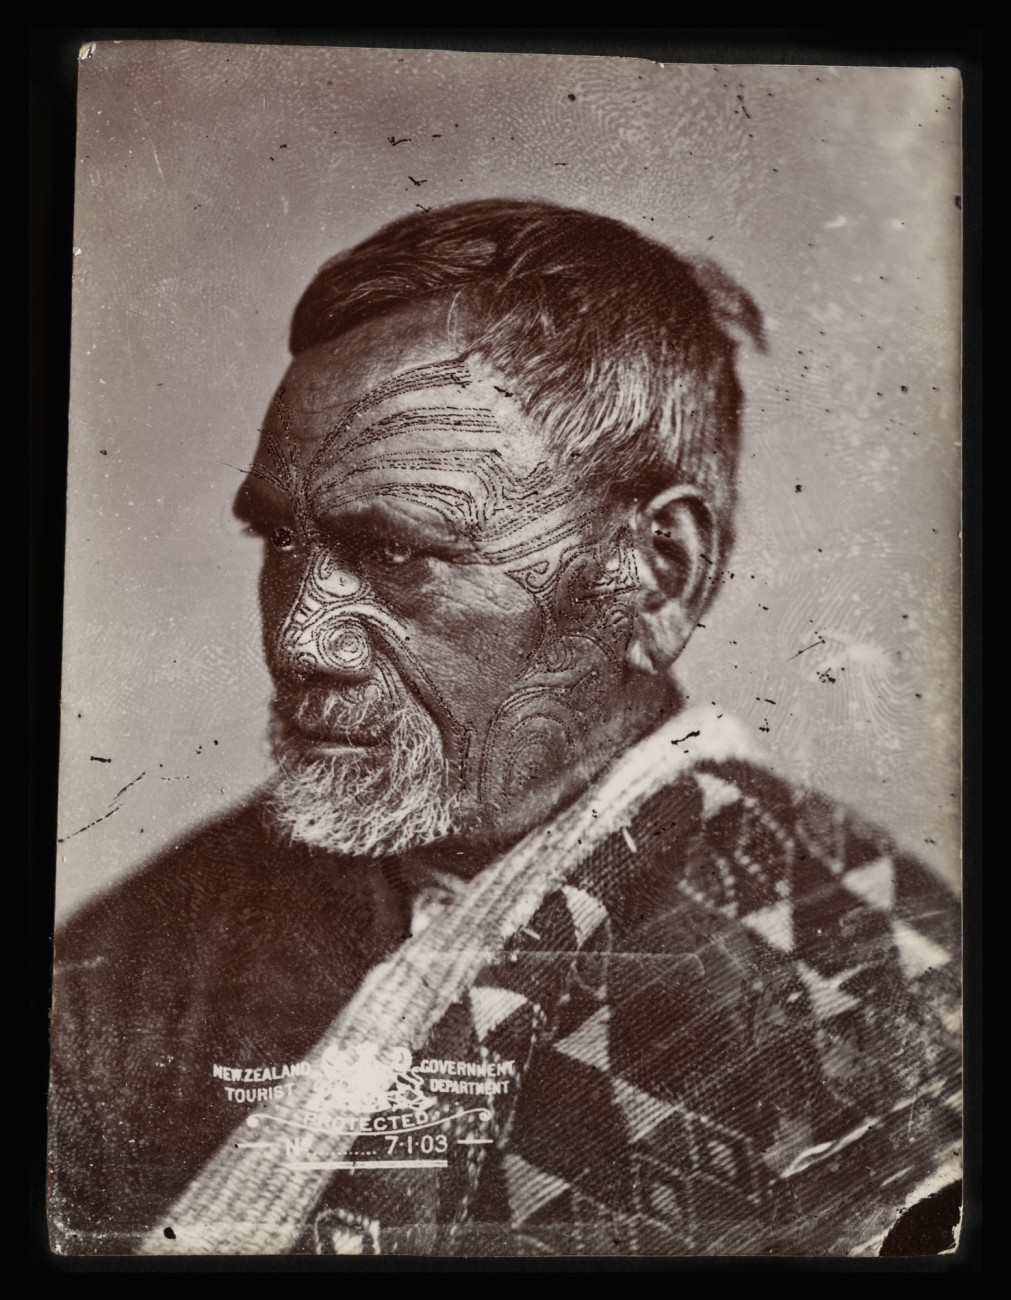 Photographers sometimes accentuated the ta moko (facial tattoo) of their Maori sitters with greasepaint. A few even resorted to retouching prints and, in extreme cases, the negative, though the practice was frowned on and may have been carried out by subsequent owners of the images. McGarrigle appears to have relied on sharp focus and carefully controlled lighting to capture the power of a sitter's ta moko.